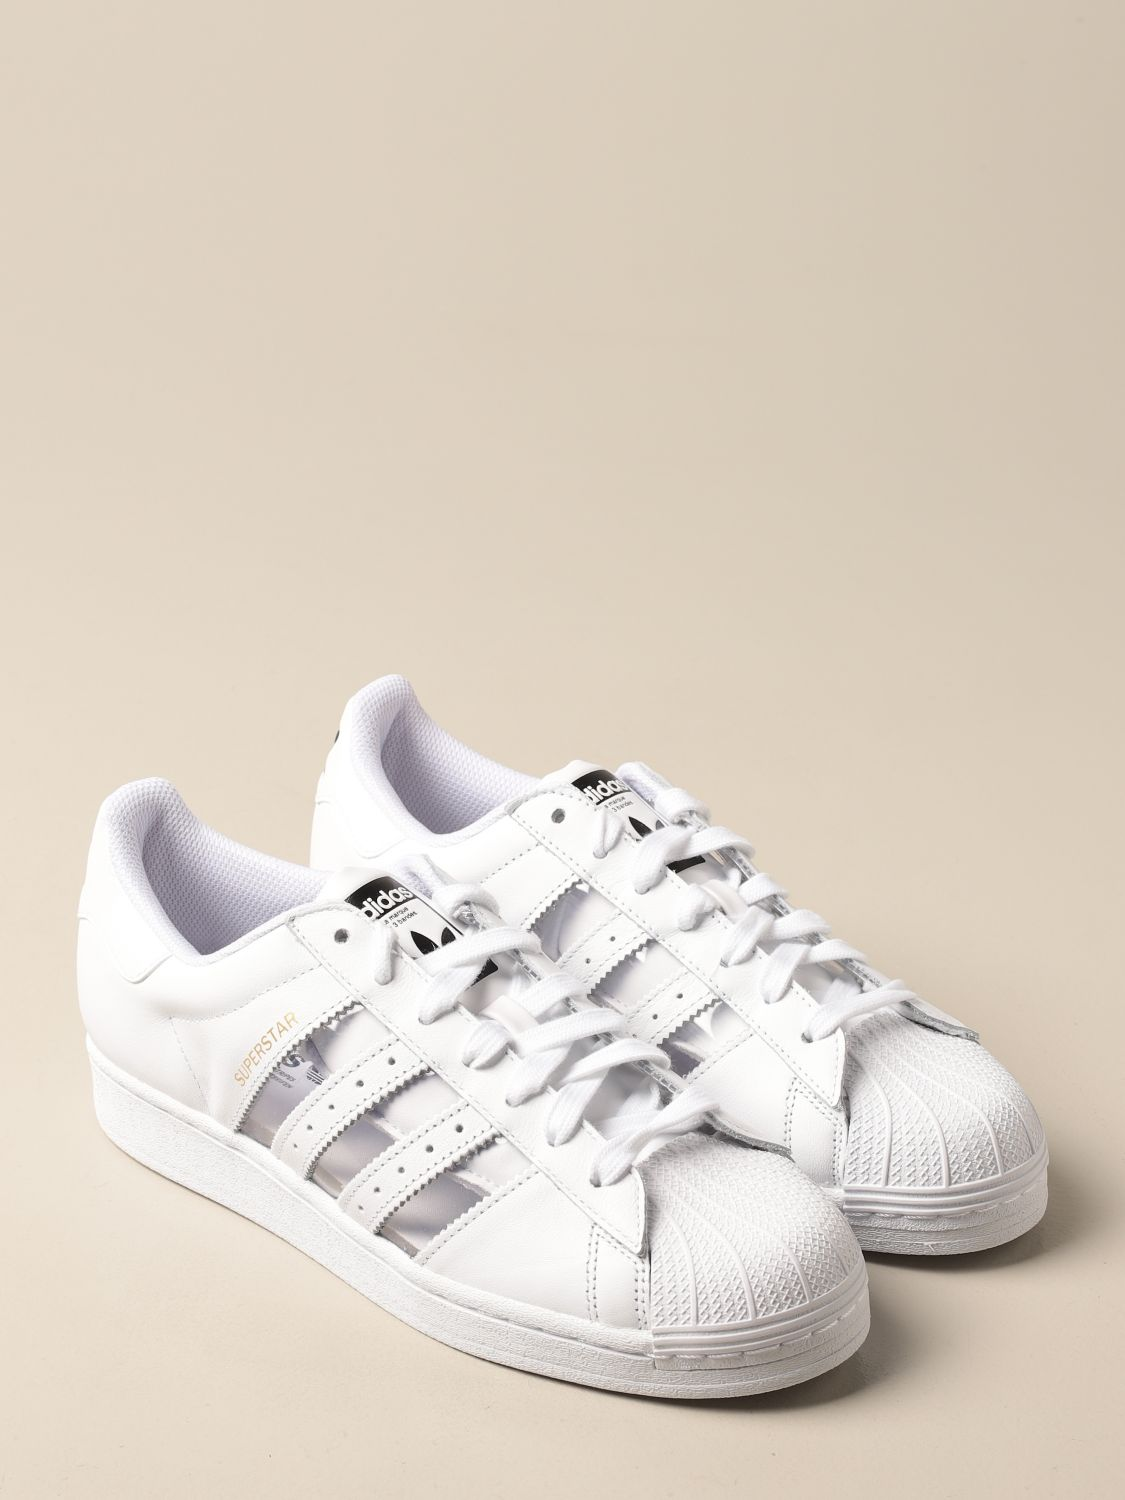 Trainers Adidas Originals: Adidas Originals Superstar sneakers in leather and pvc white 2